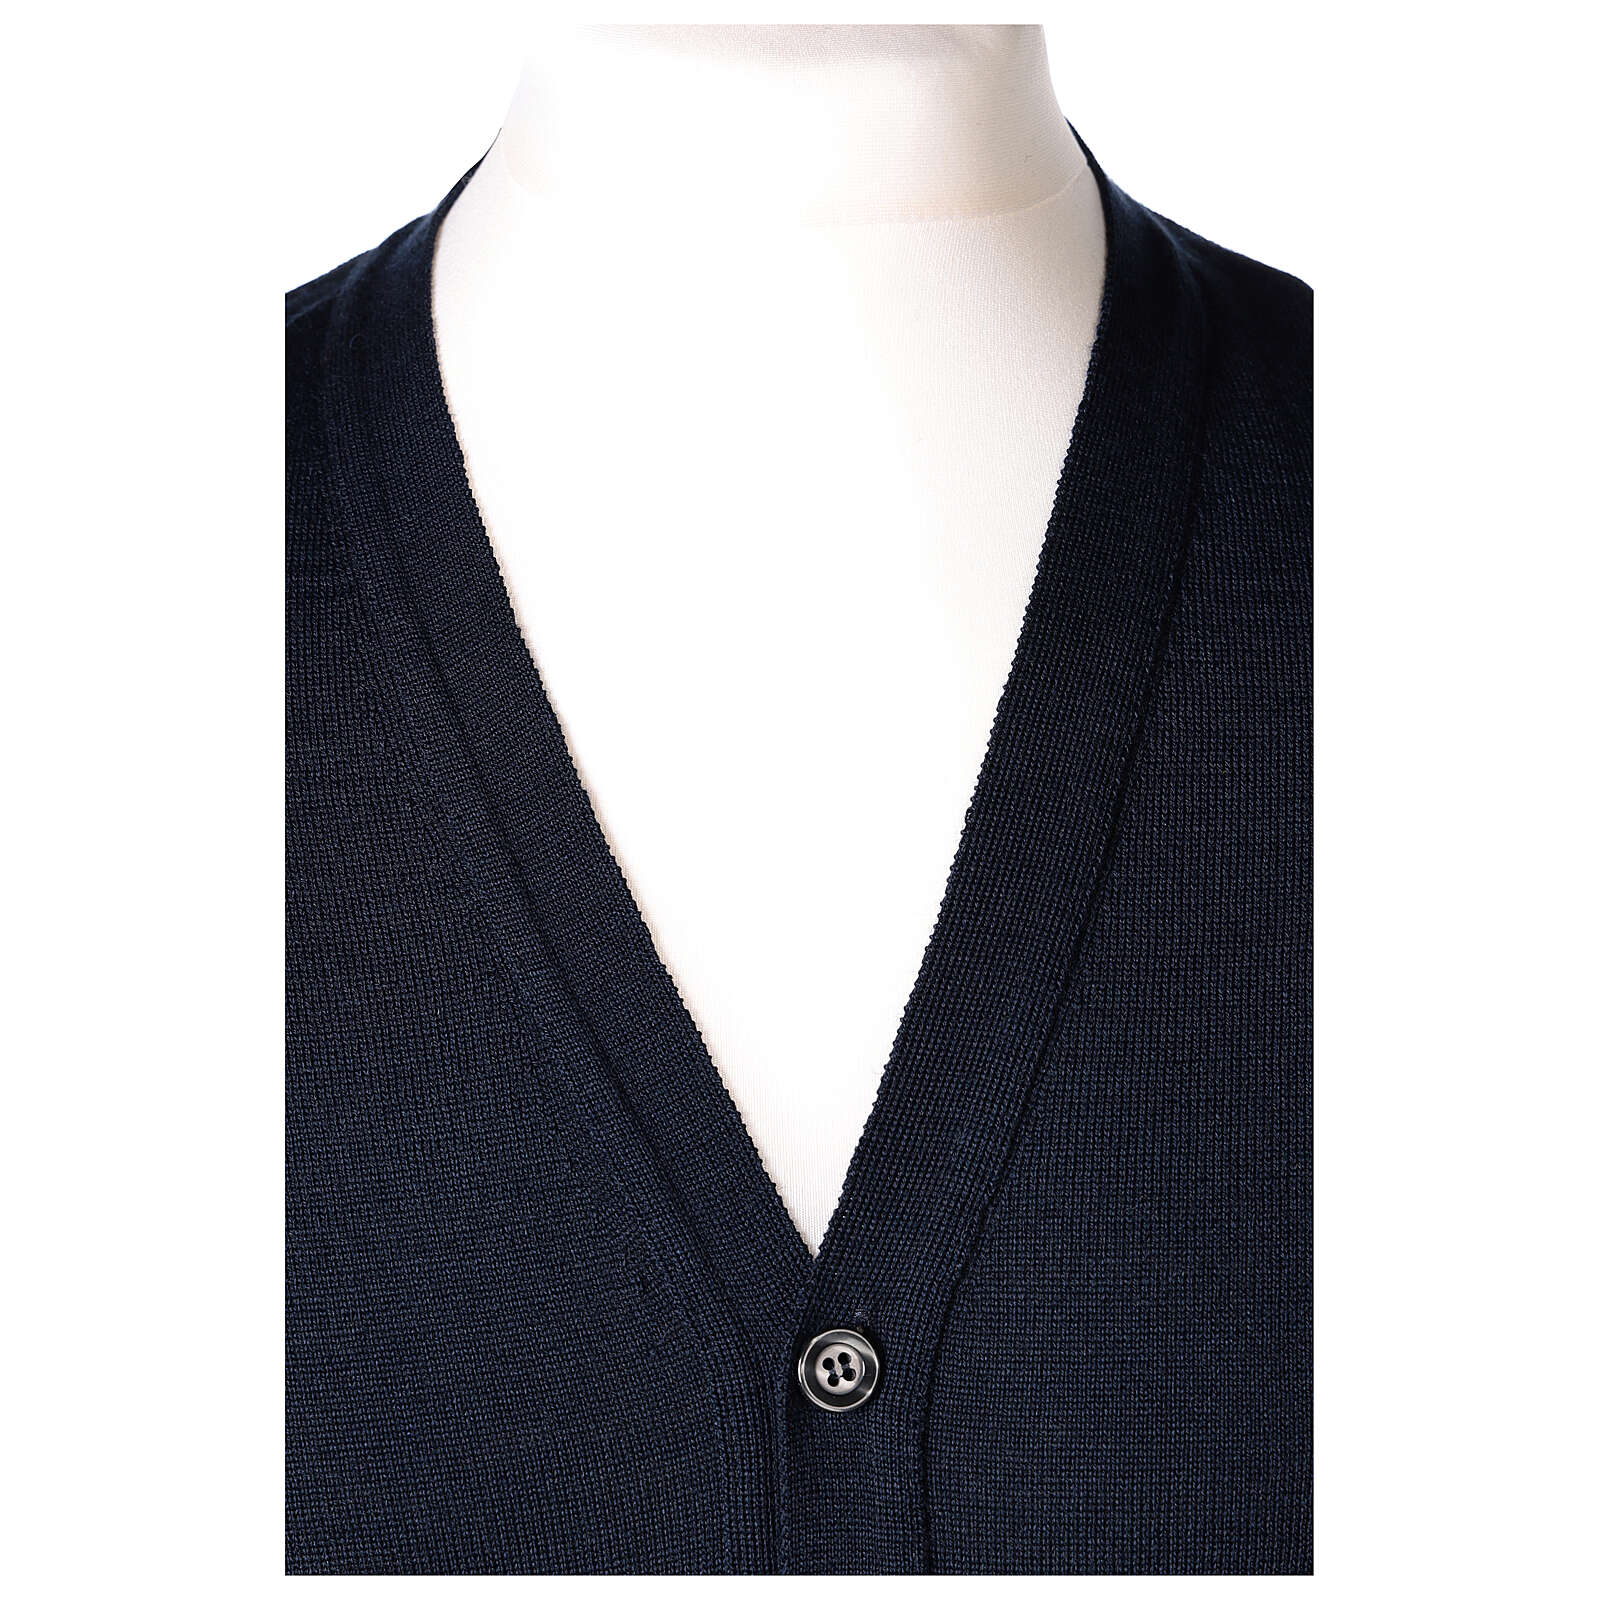 Sleeveless clergy cardigan blue plain knit 50% acrylic 50% merino wool In Primis 4